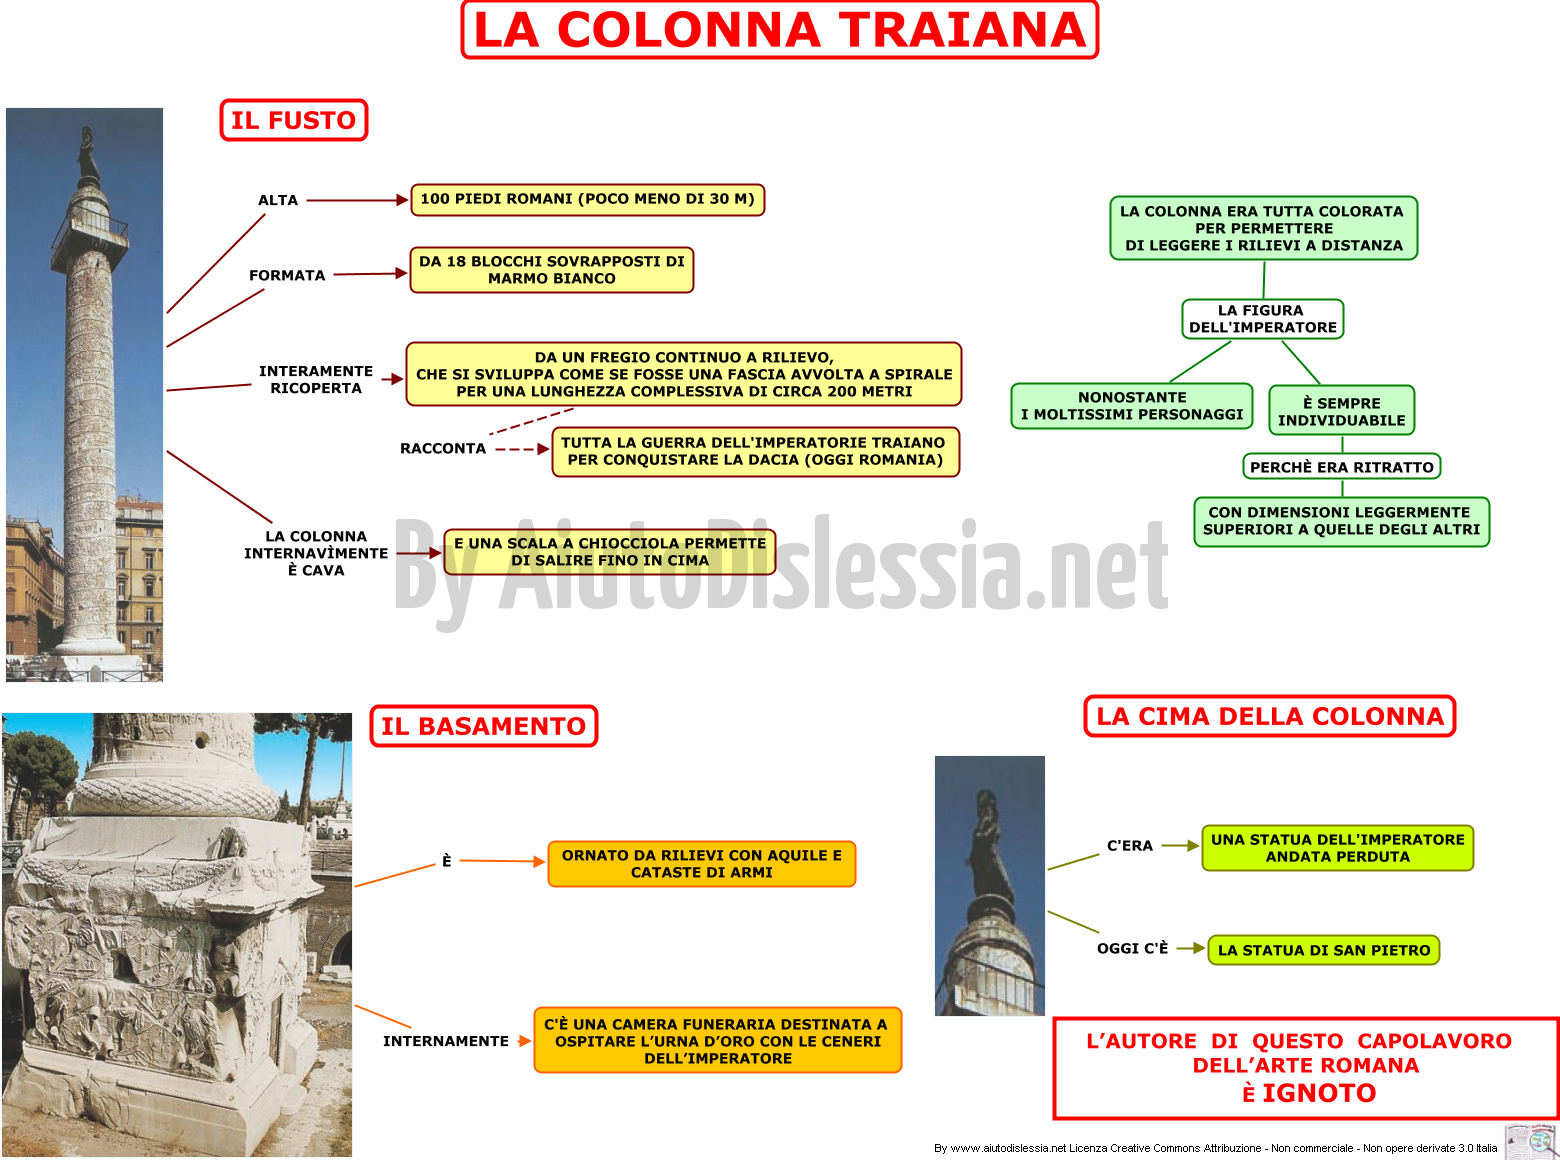 17. LA COLONNA TRAIANA